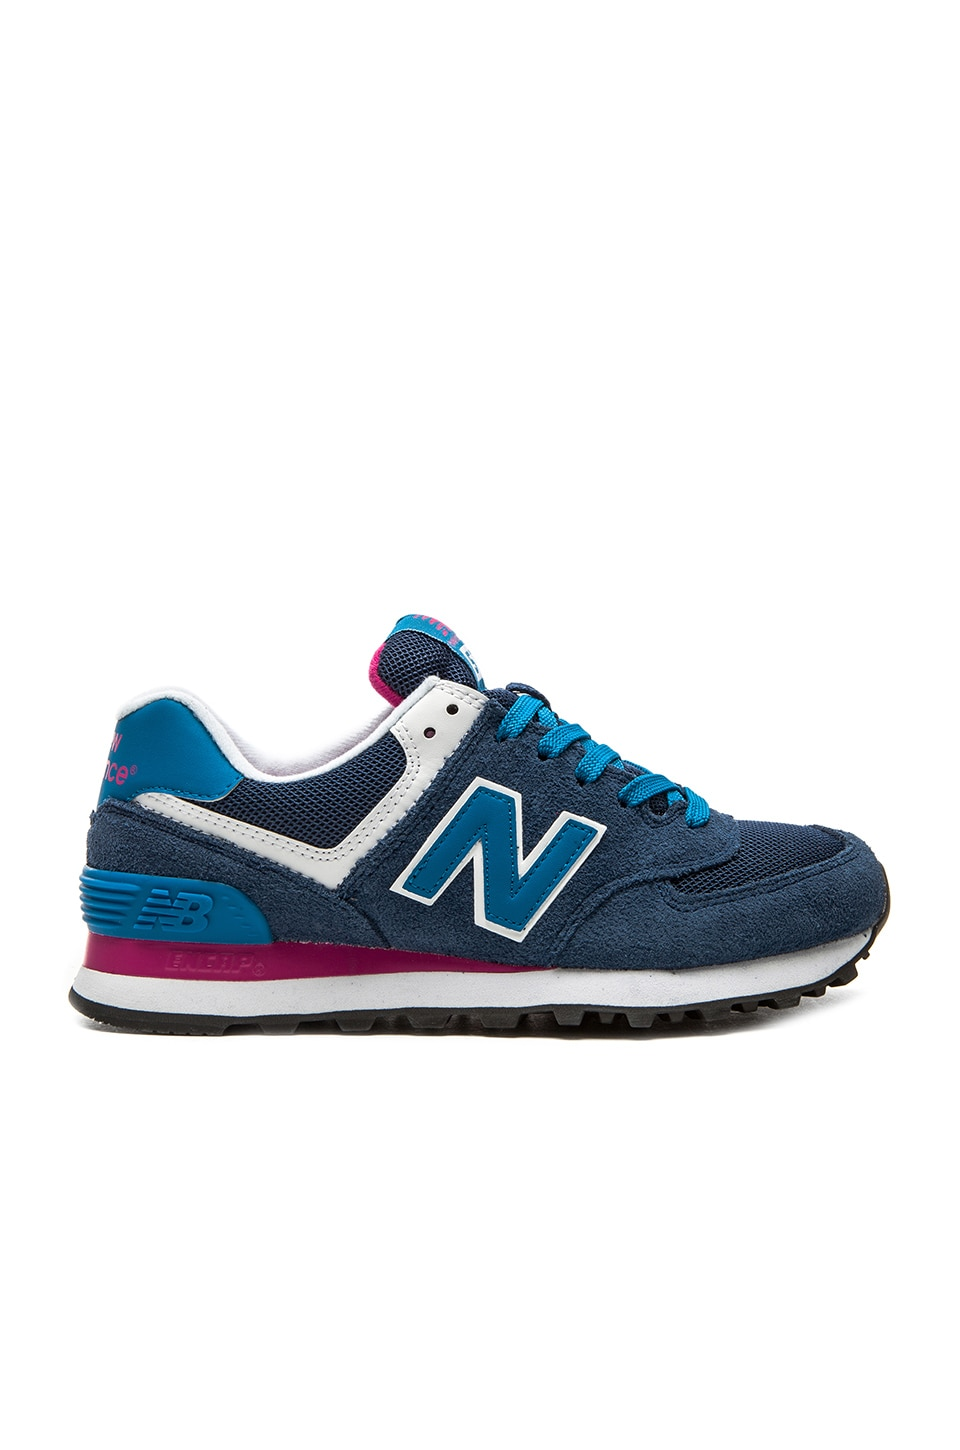 the best attitude e8bb9 7c4ac New Balance 574 Core Plus Collection Sneaker in Blue & Pink ...